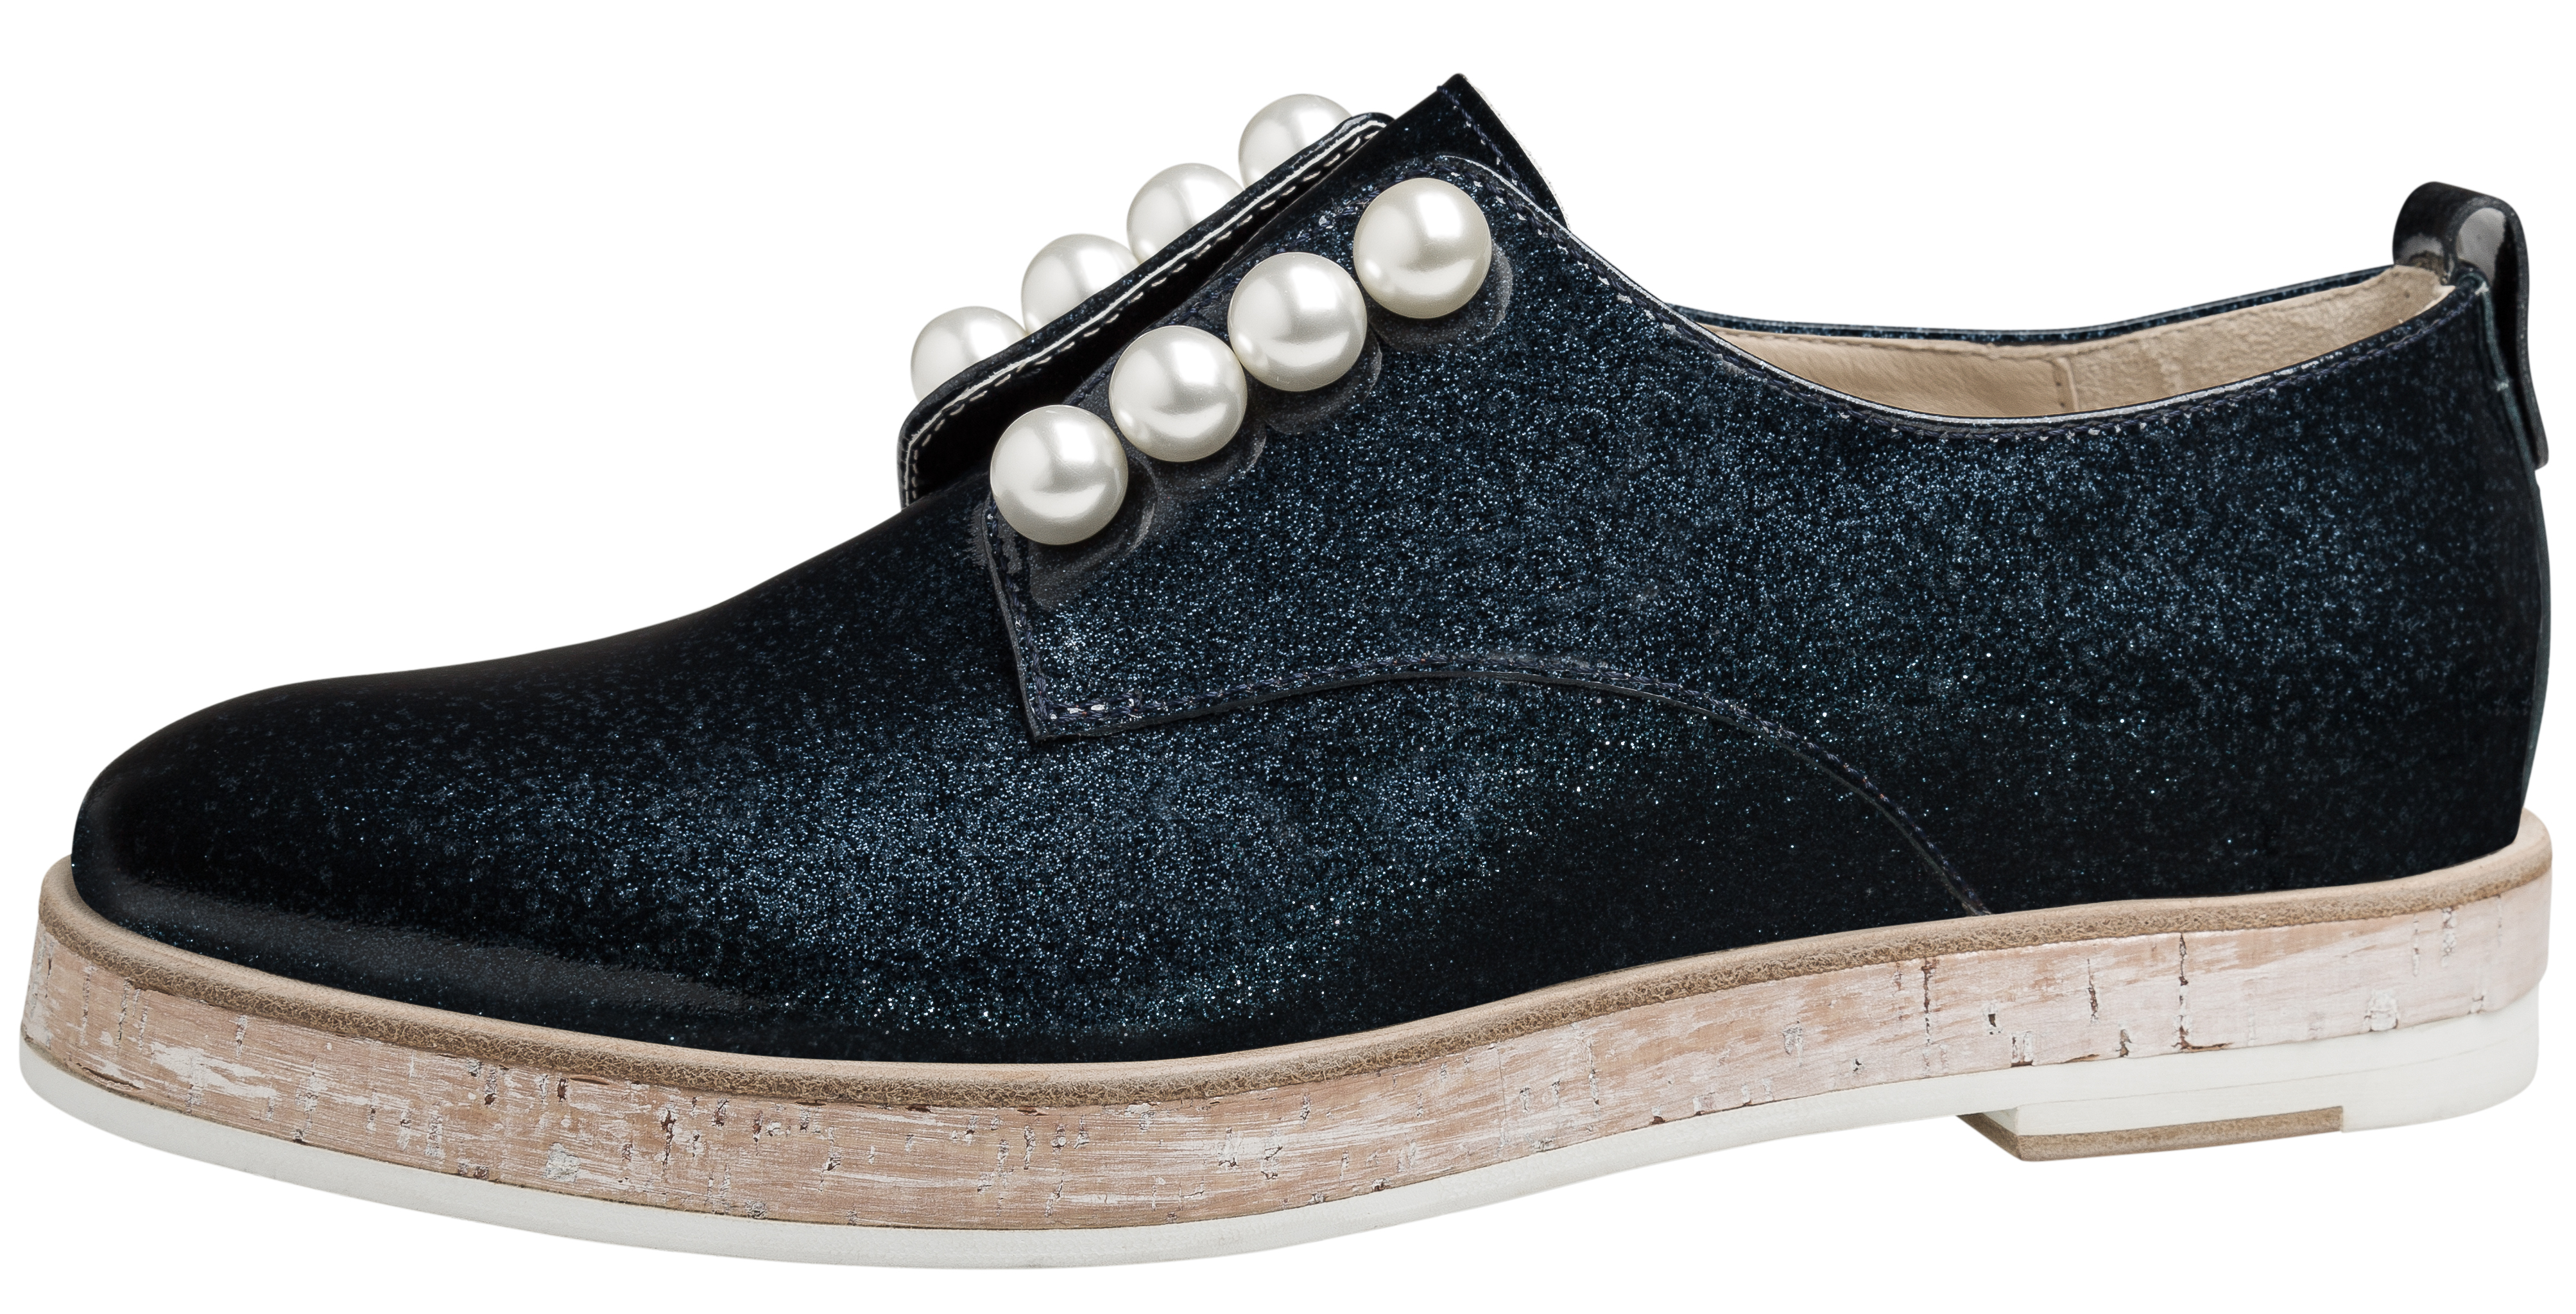 Girly Sneaker #agl #aglshoes #shoes #sneaker #girly #studs